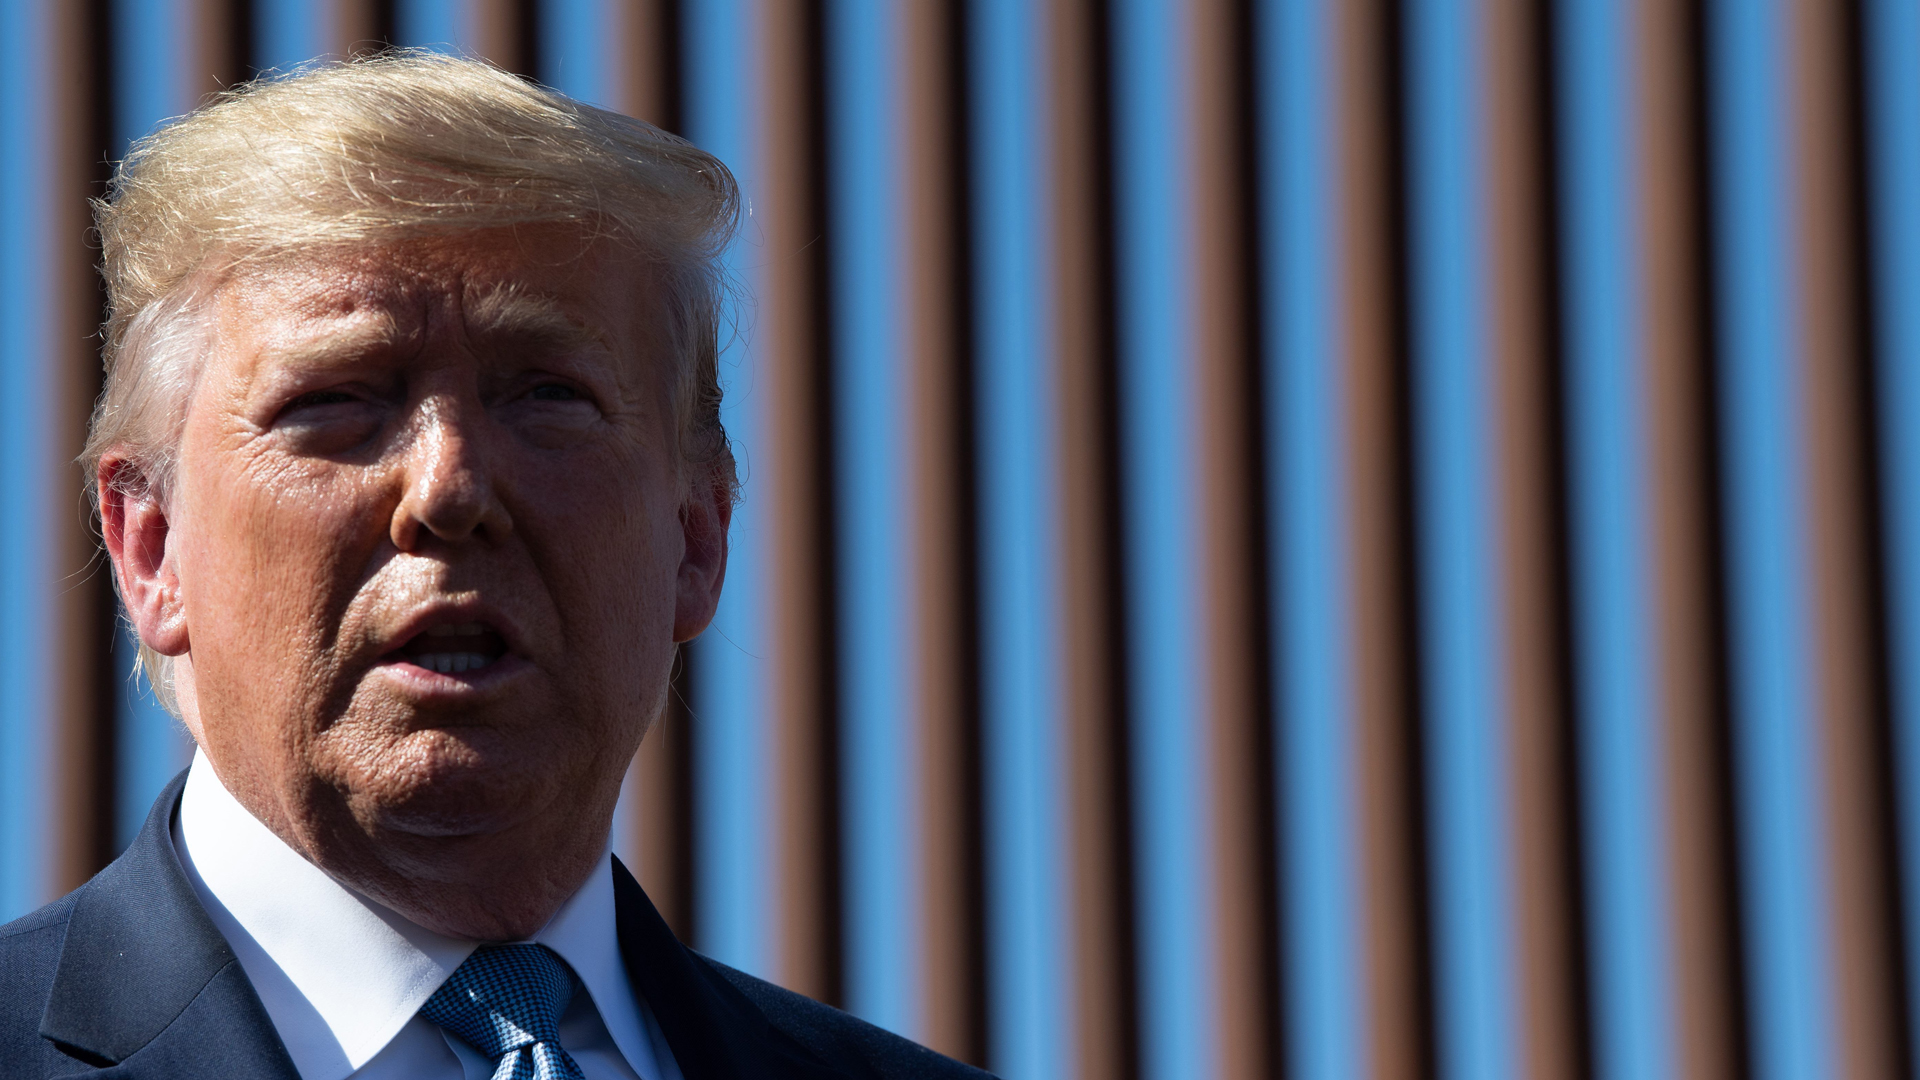 Donald Trump visits the US-Mexico border fence in Otay Mesa, California on Sept. 18, 2019. (Nicholas Kamm/AFP/Getty Images)